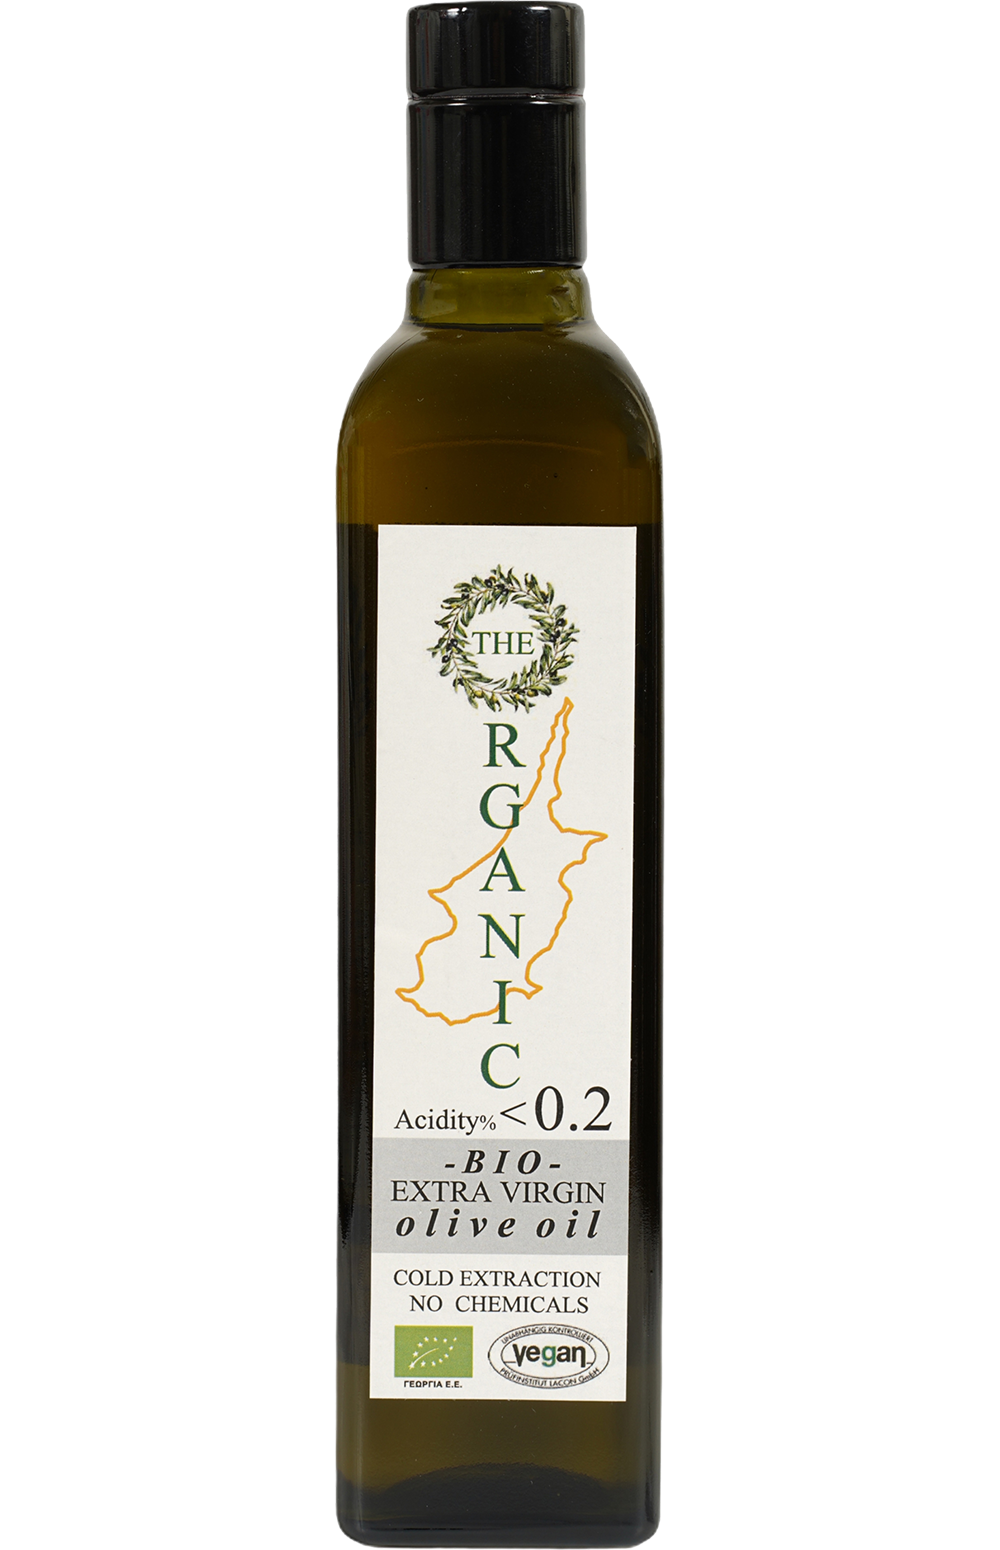 The Organic olive oil